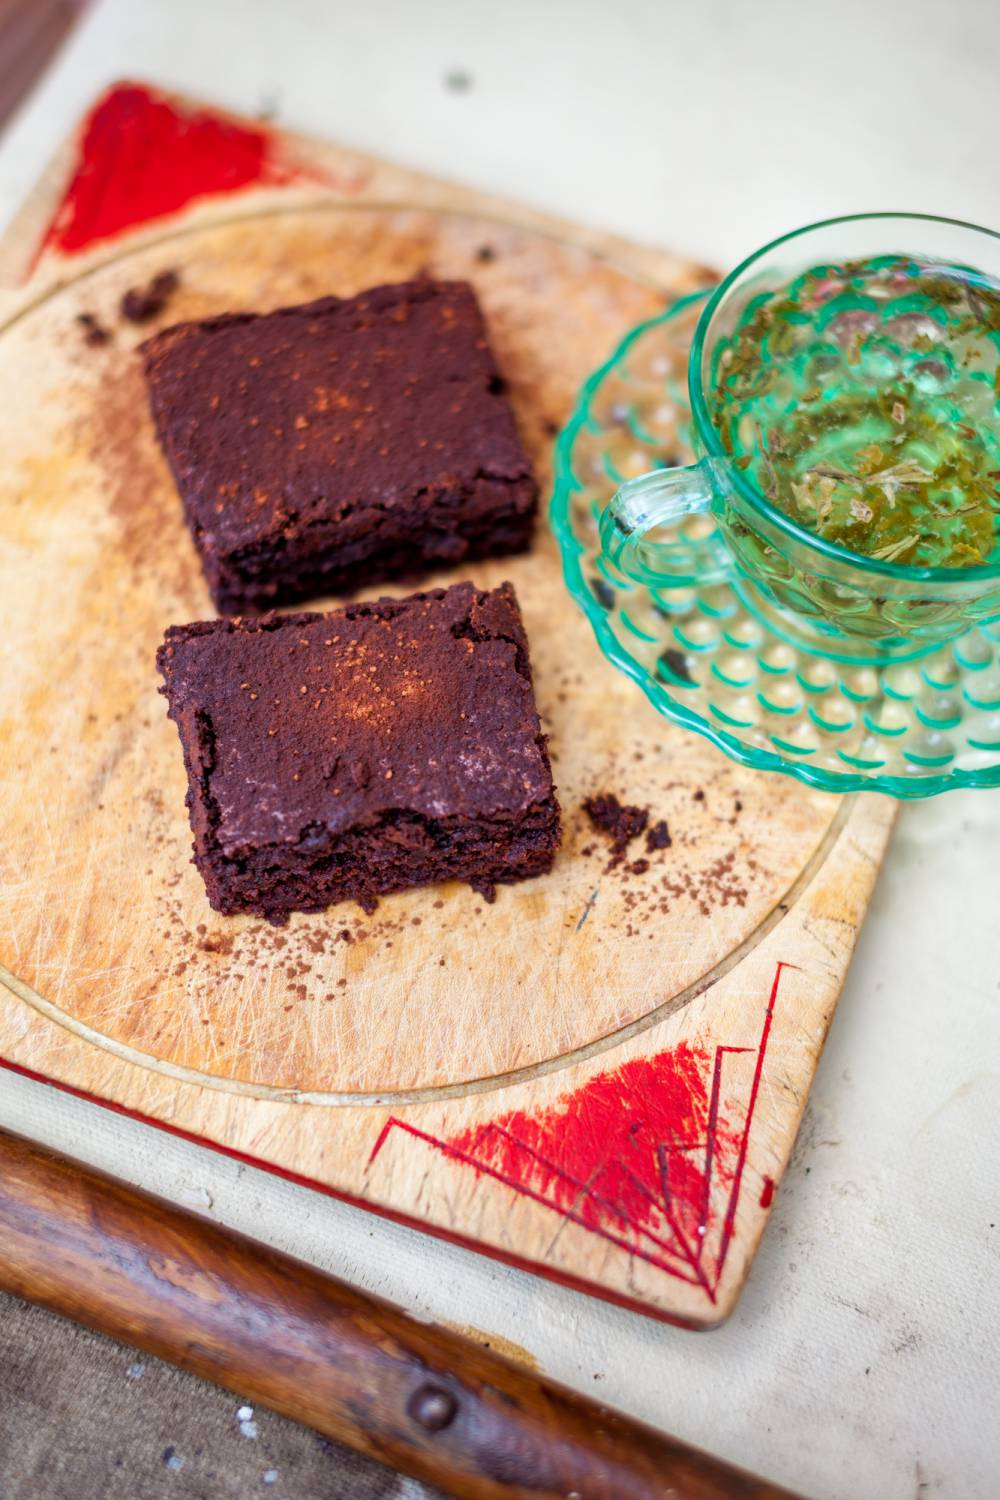 Beetroot Brownies - A Healthier Way to Stem Your Chocolate Cravings